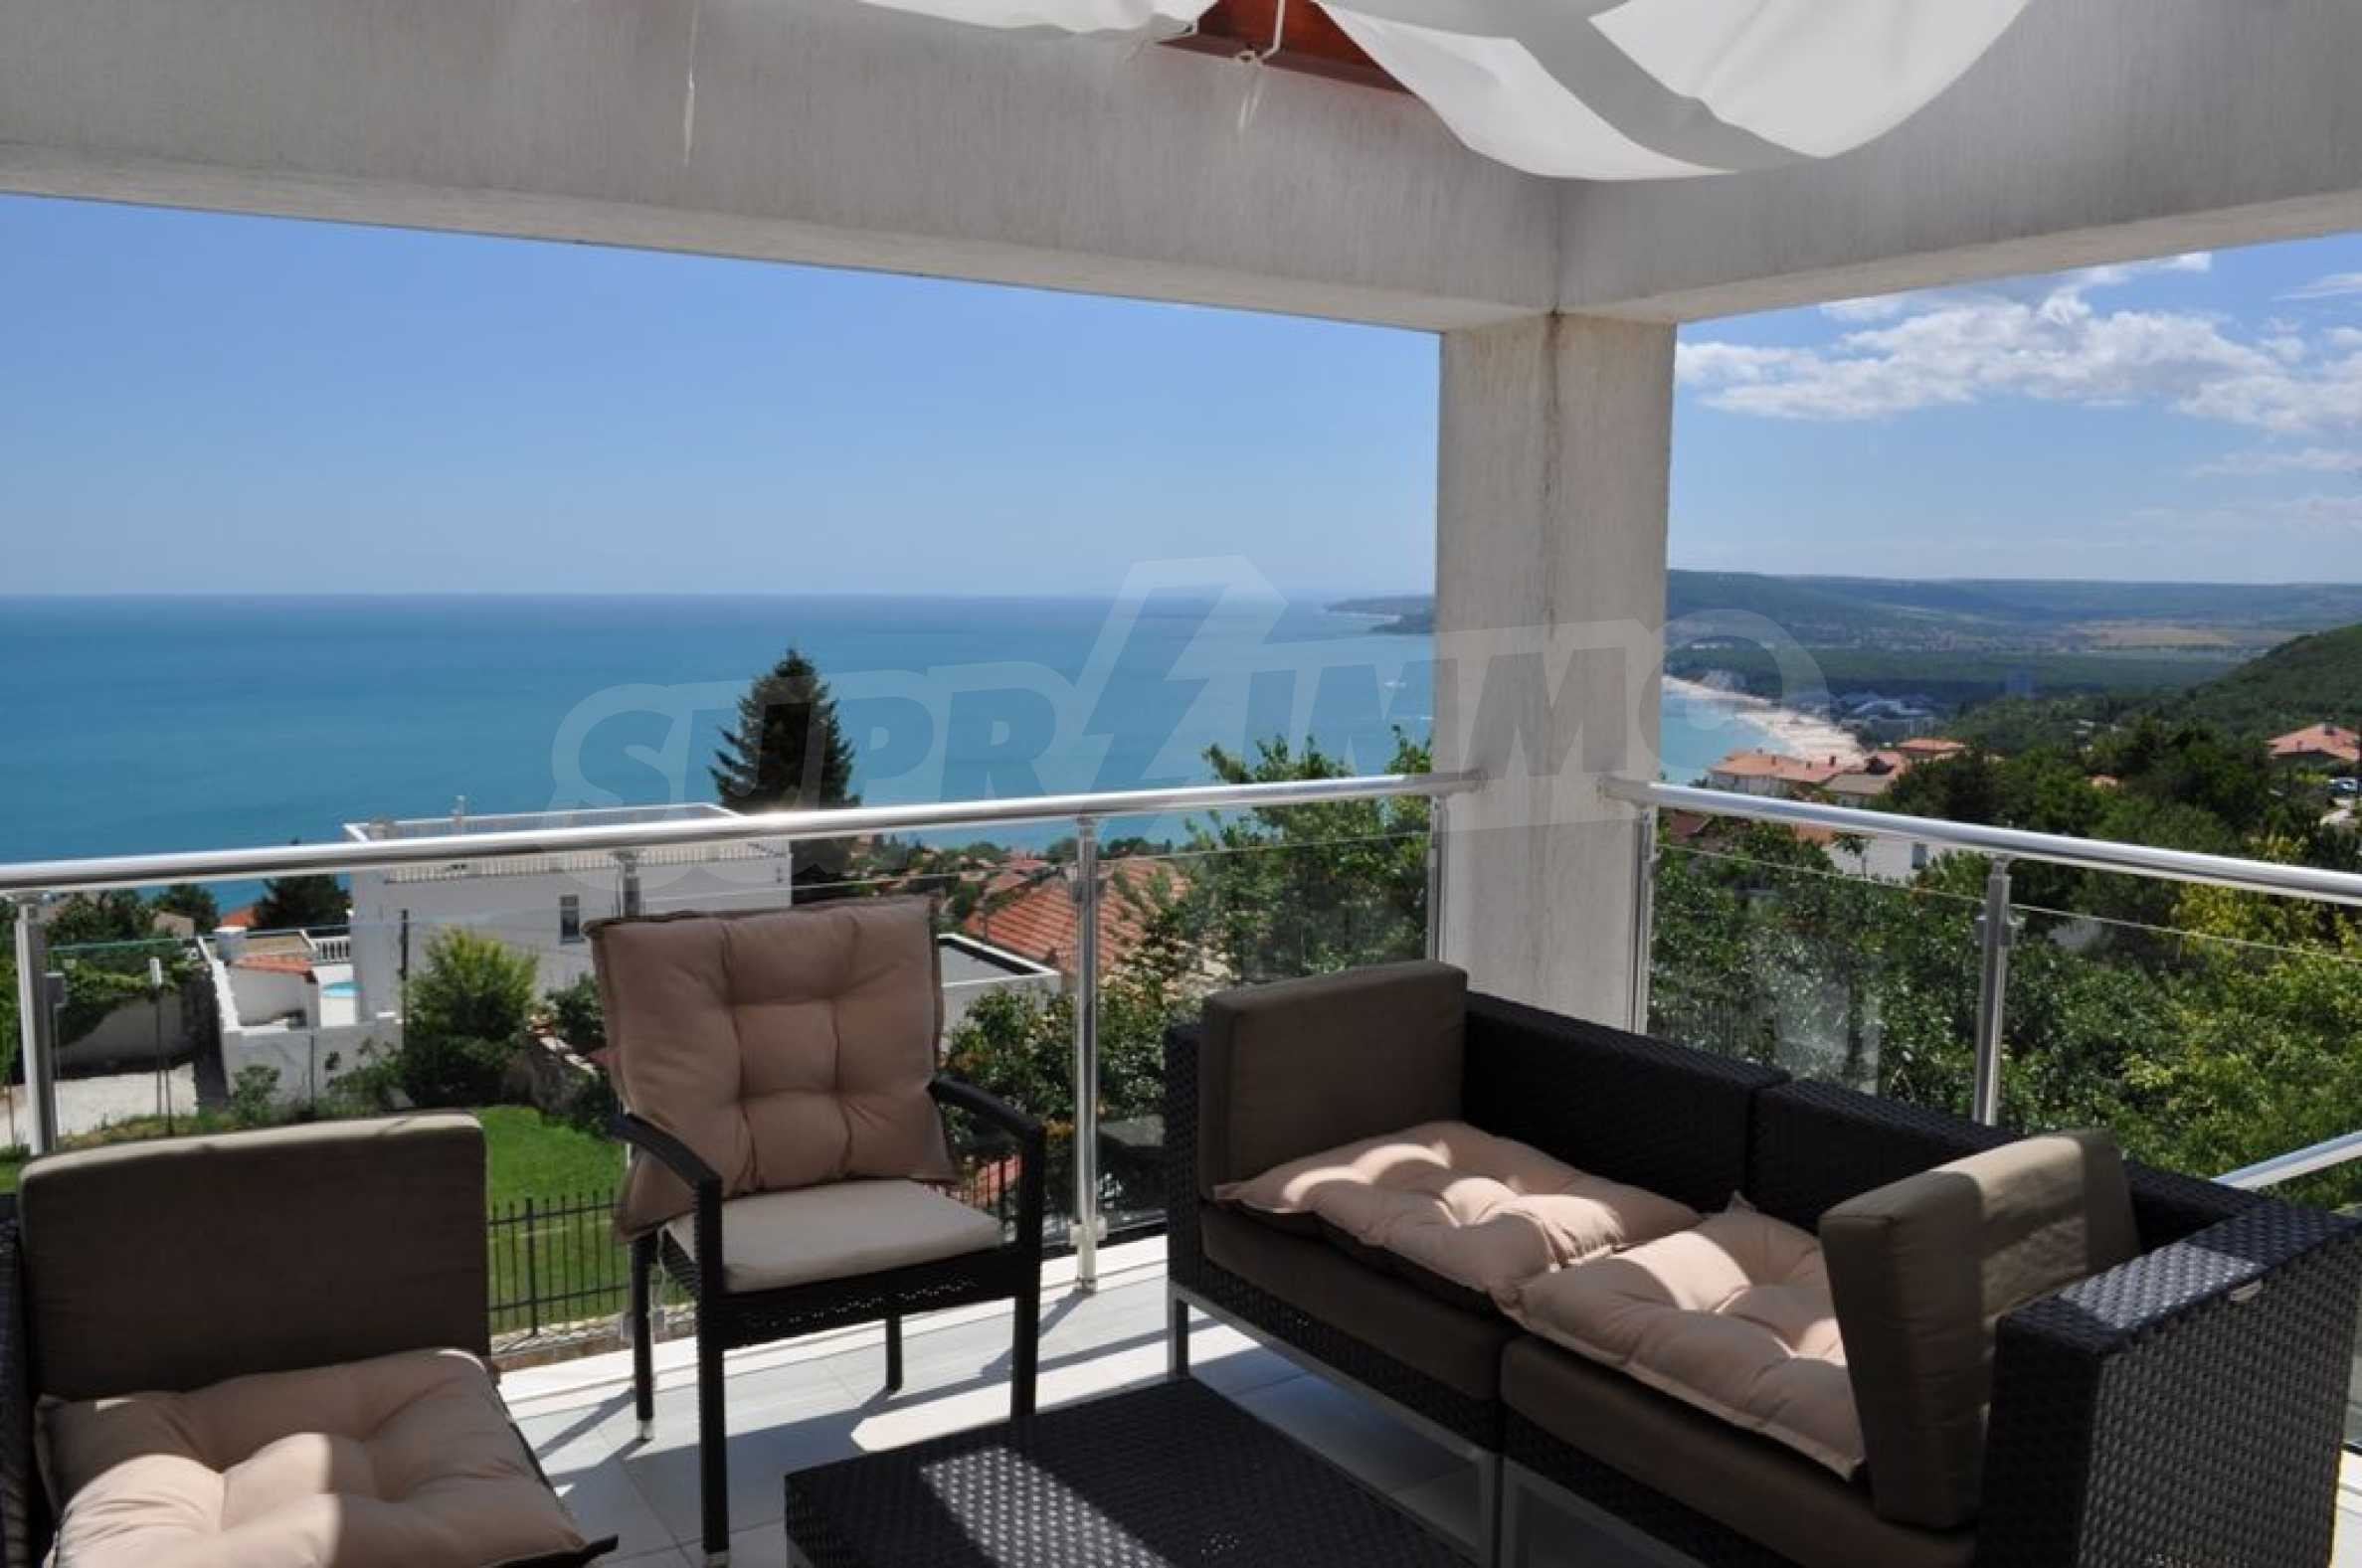 Luxury villa with 4 bedrooms for rent in Albena area  3